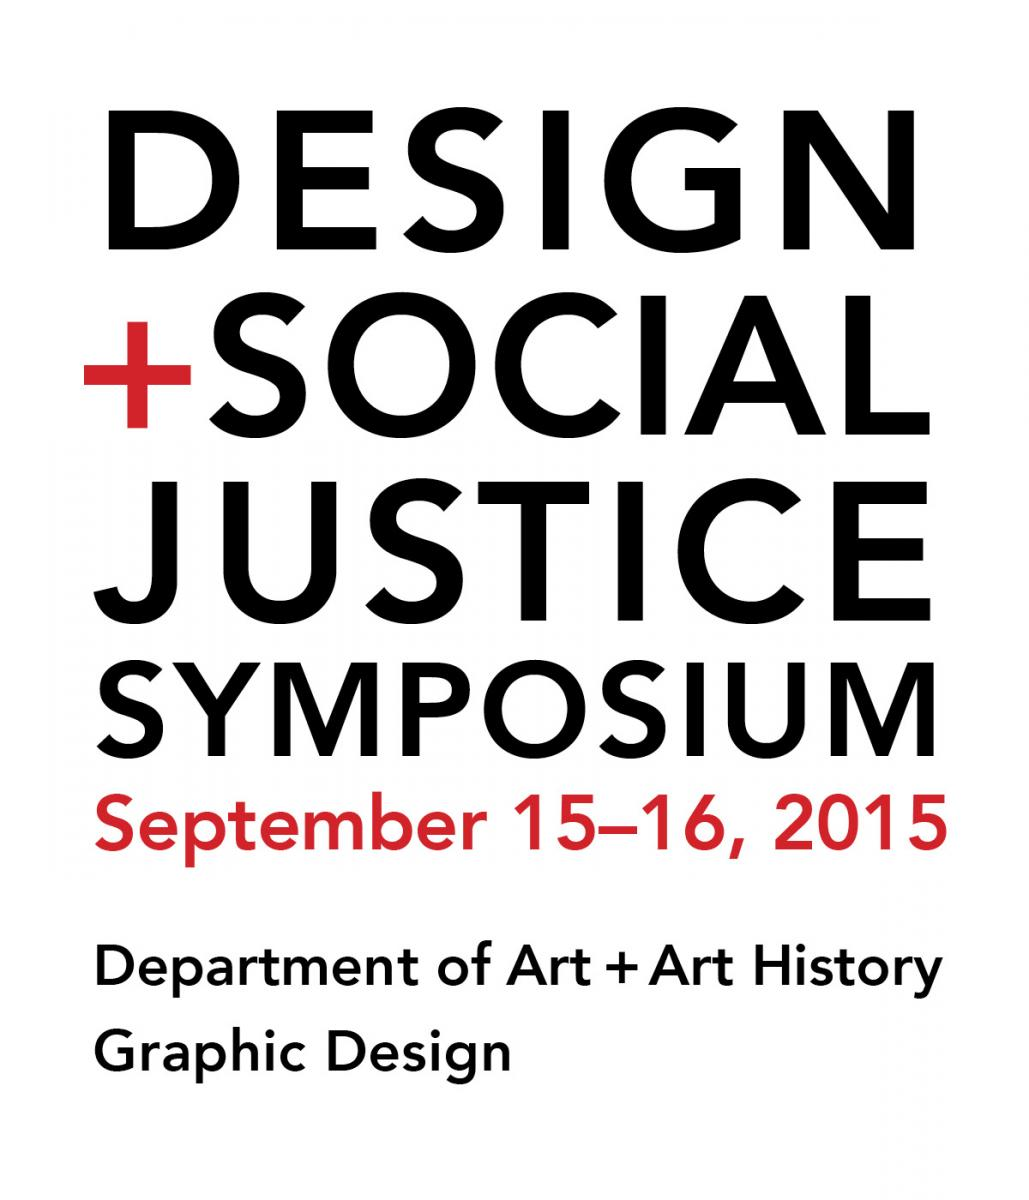 Design + Social Justice Symposium graphic